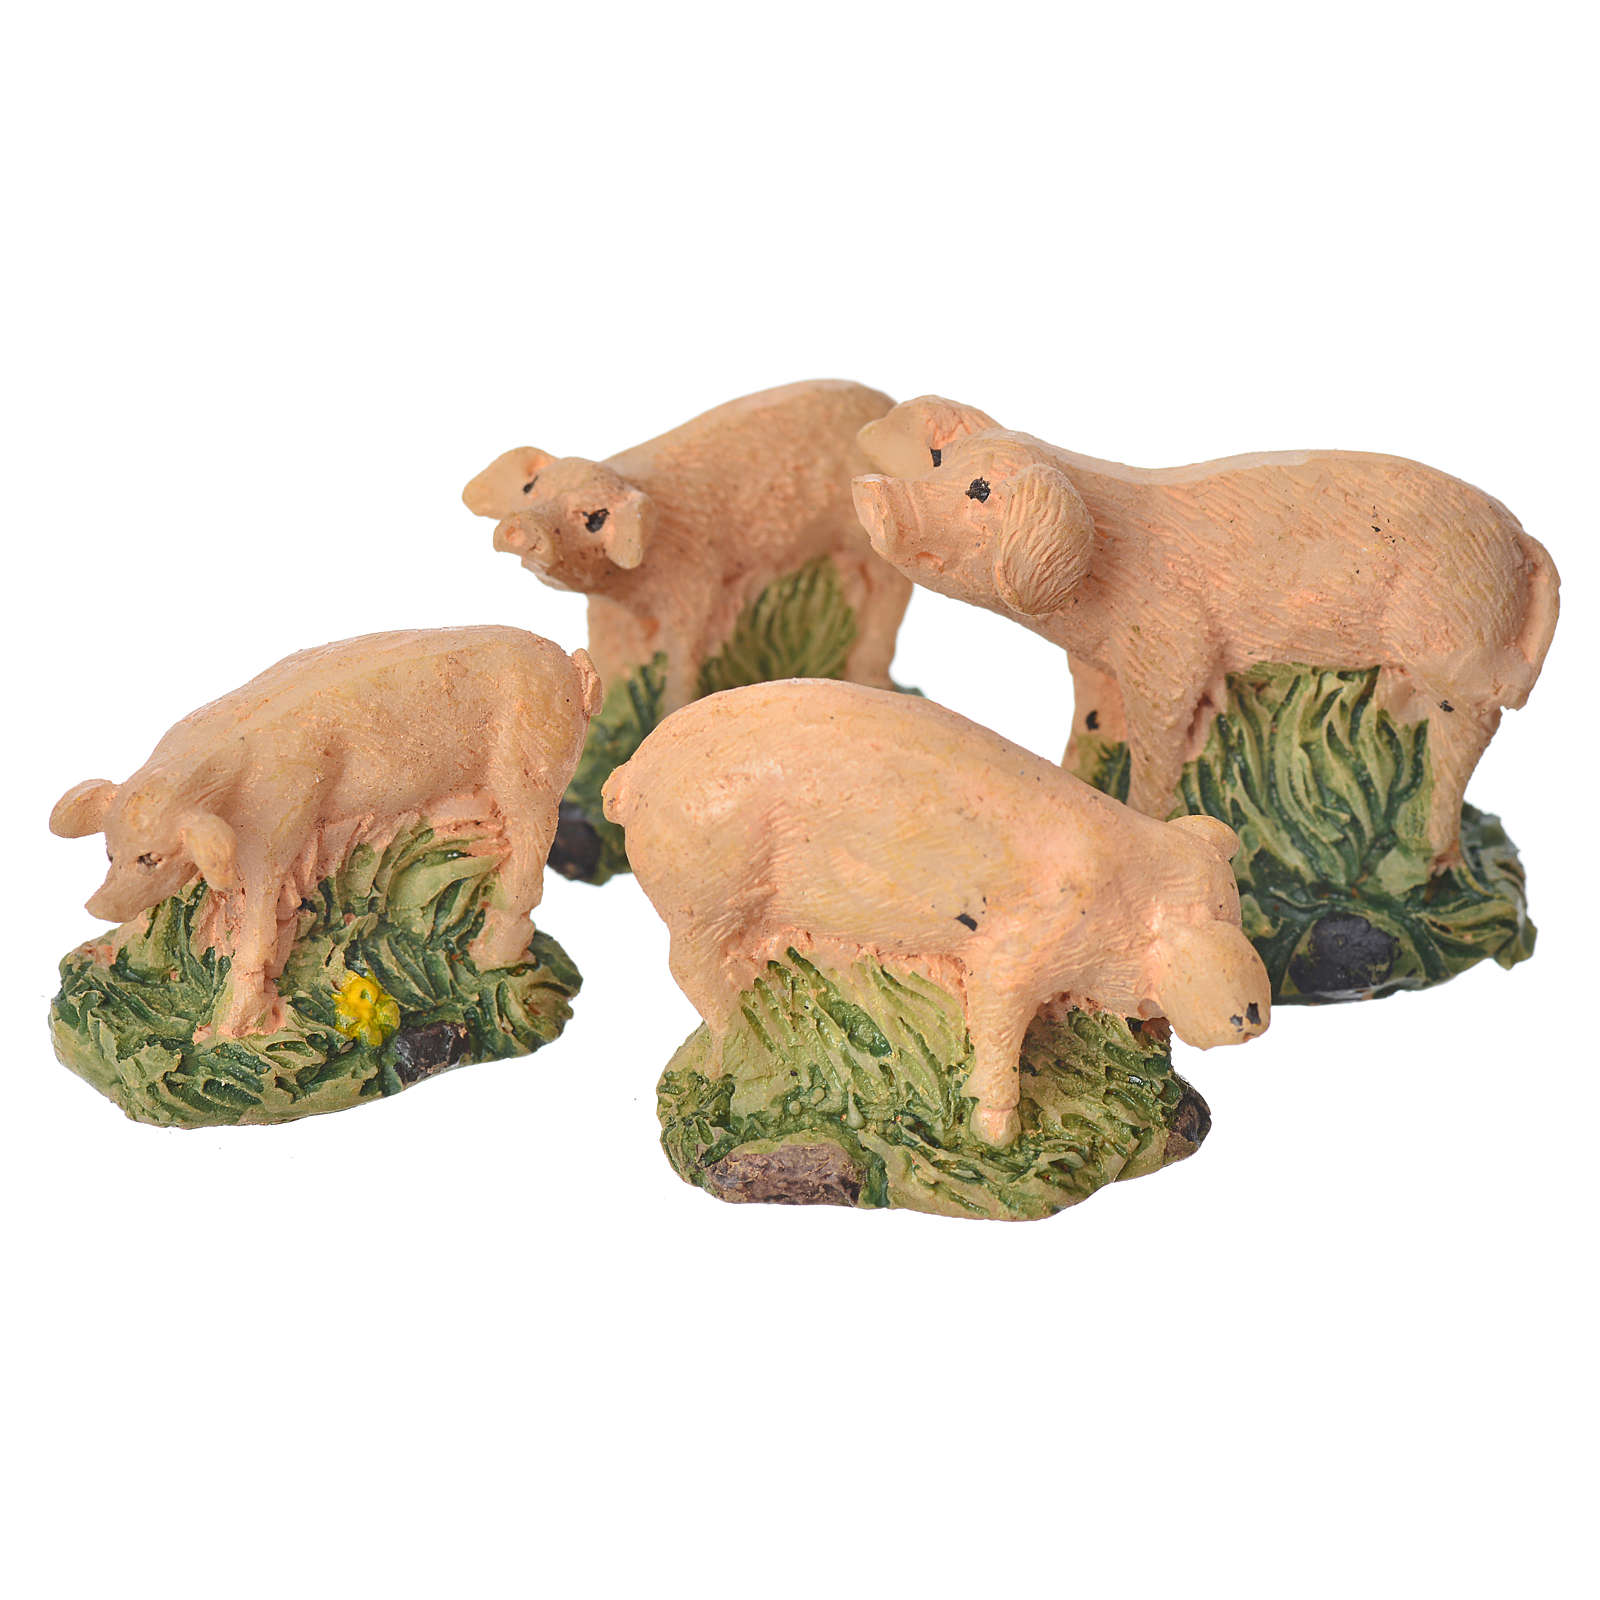 Nativity figurine, resin pigs, 4 pieces 10cm 3